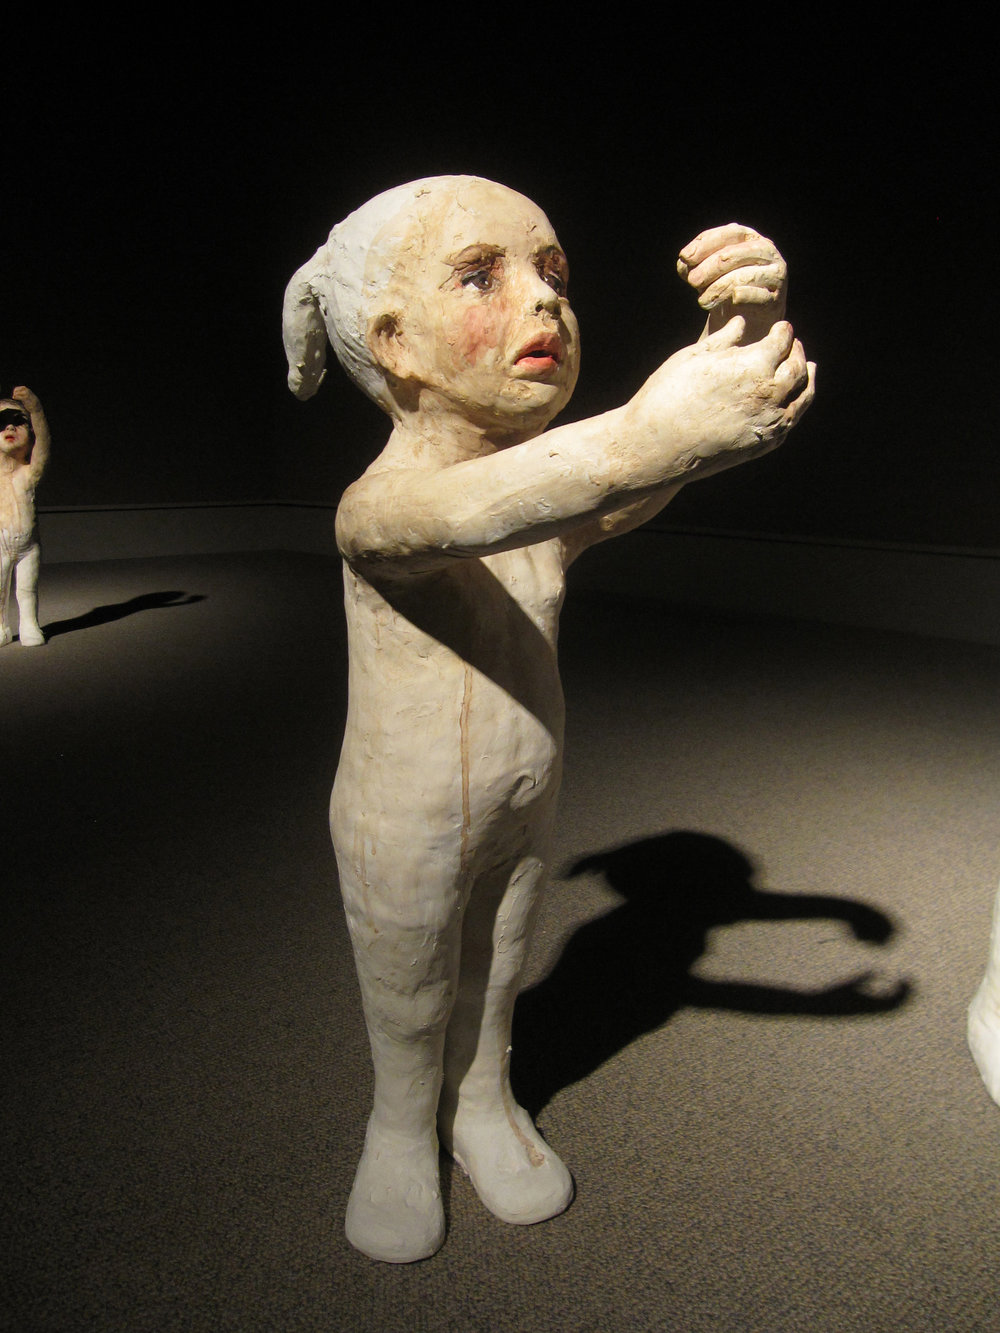 Falling, 2011, Painted ceramic, 27 x 9 x 15 in. Museum of Nebraska Art, Kearney, Nebraska